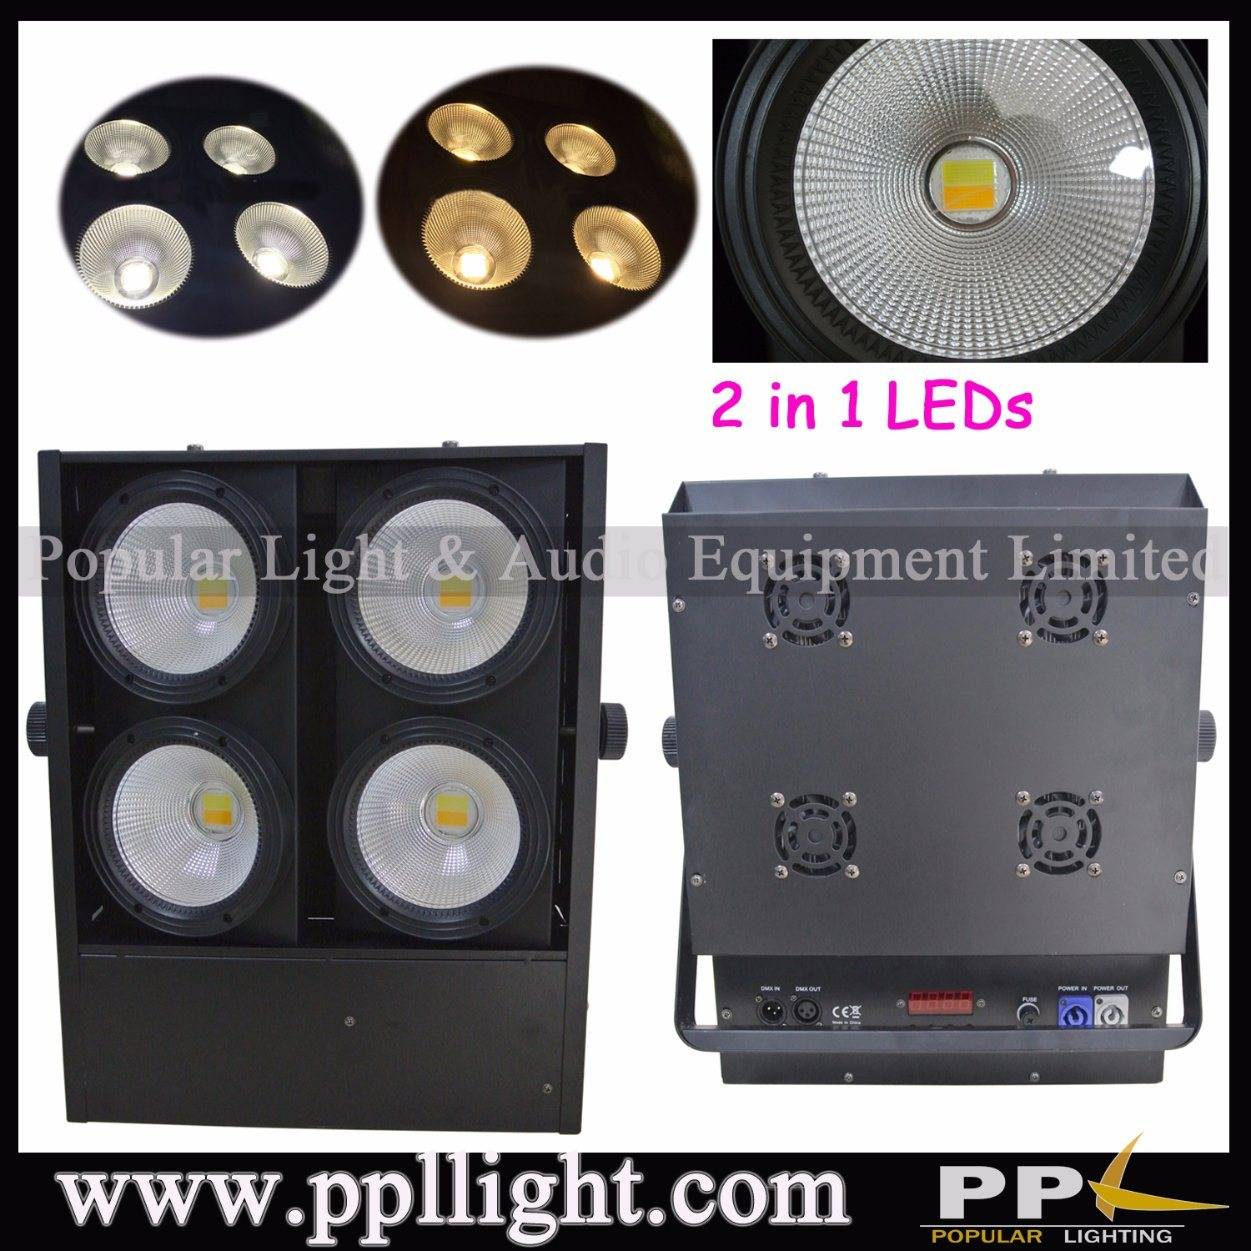 400W COB LED Blinder Light Film/Theater/Stage Background Light